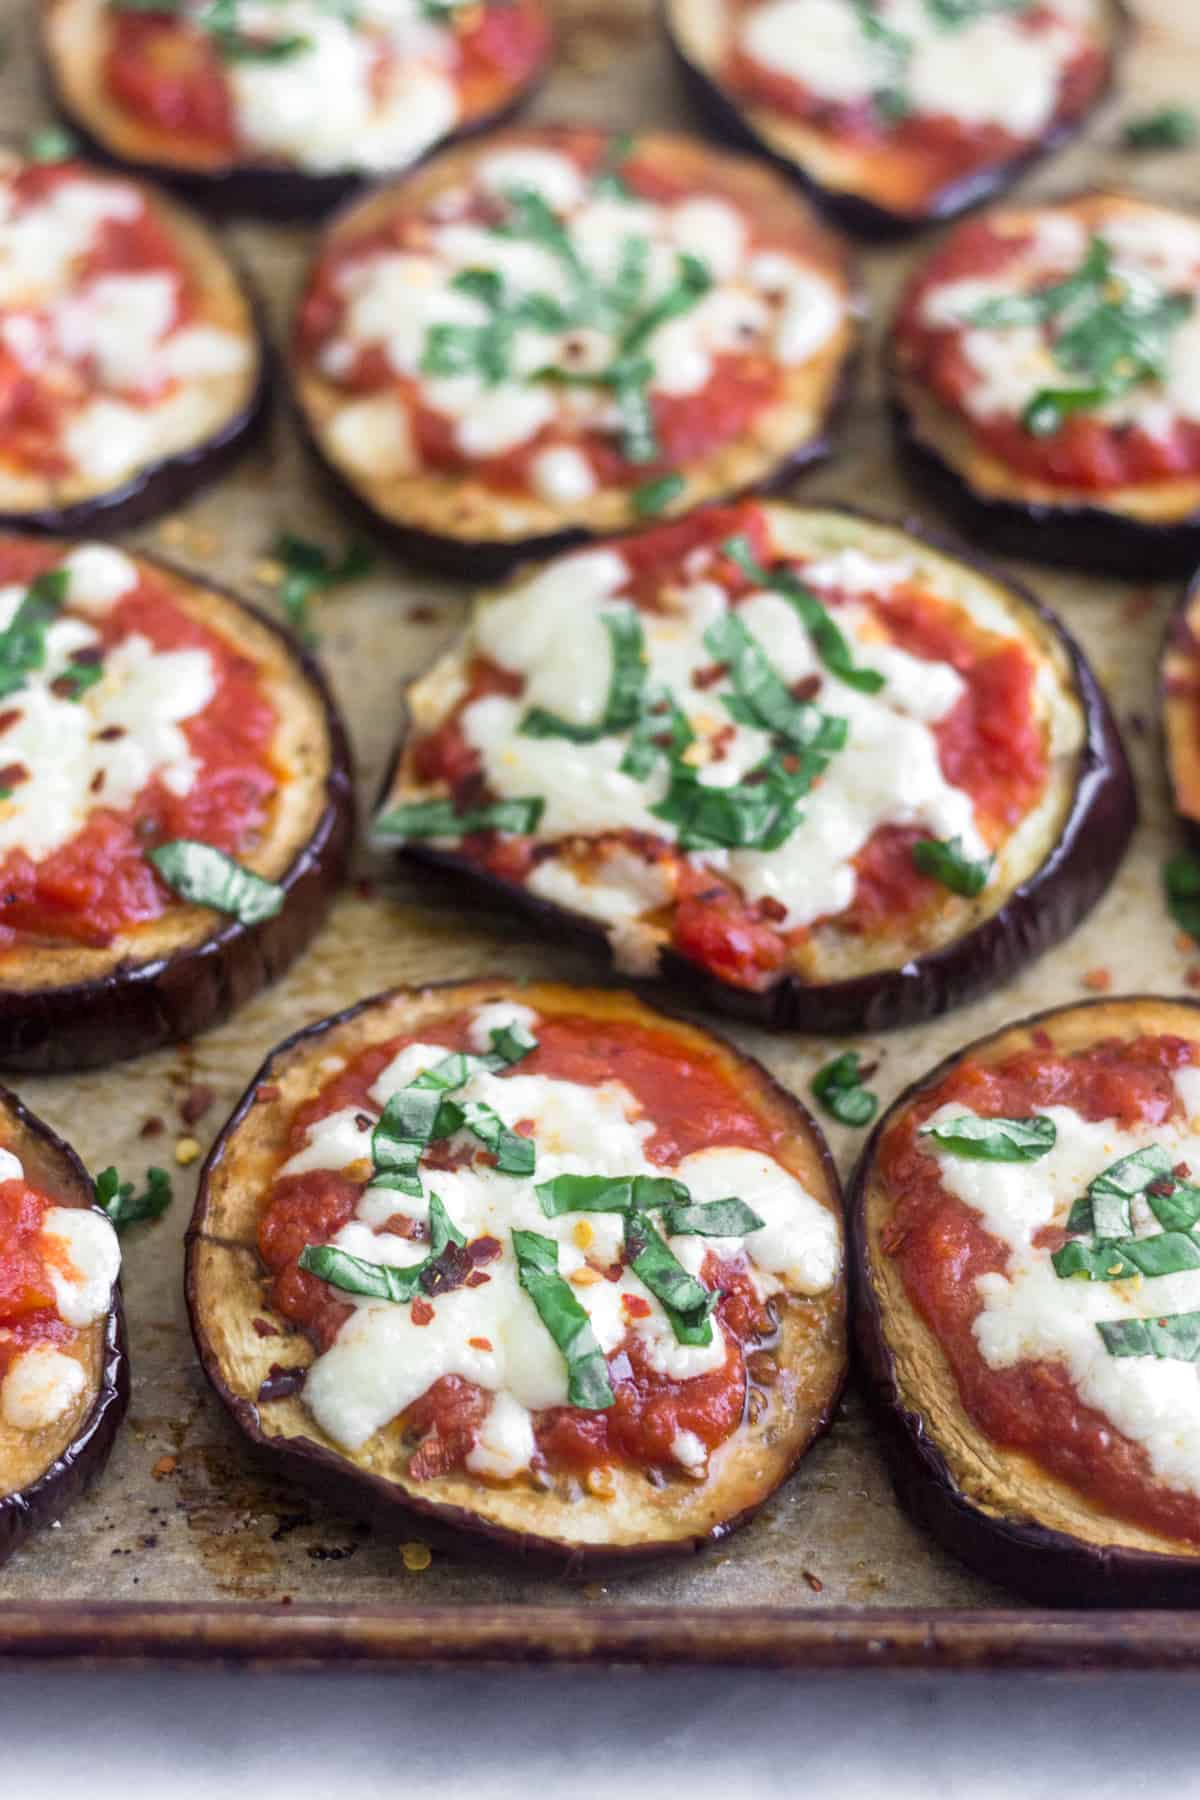 A bunch of Grilled Eggplant Pizza sprinkled with basil and red pepper flakes on a baking sheet